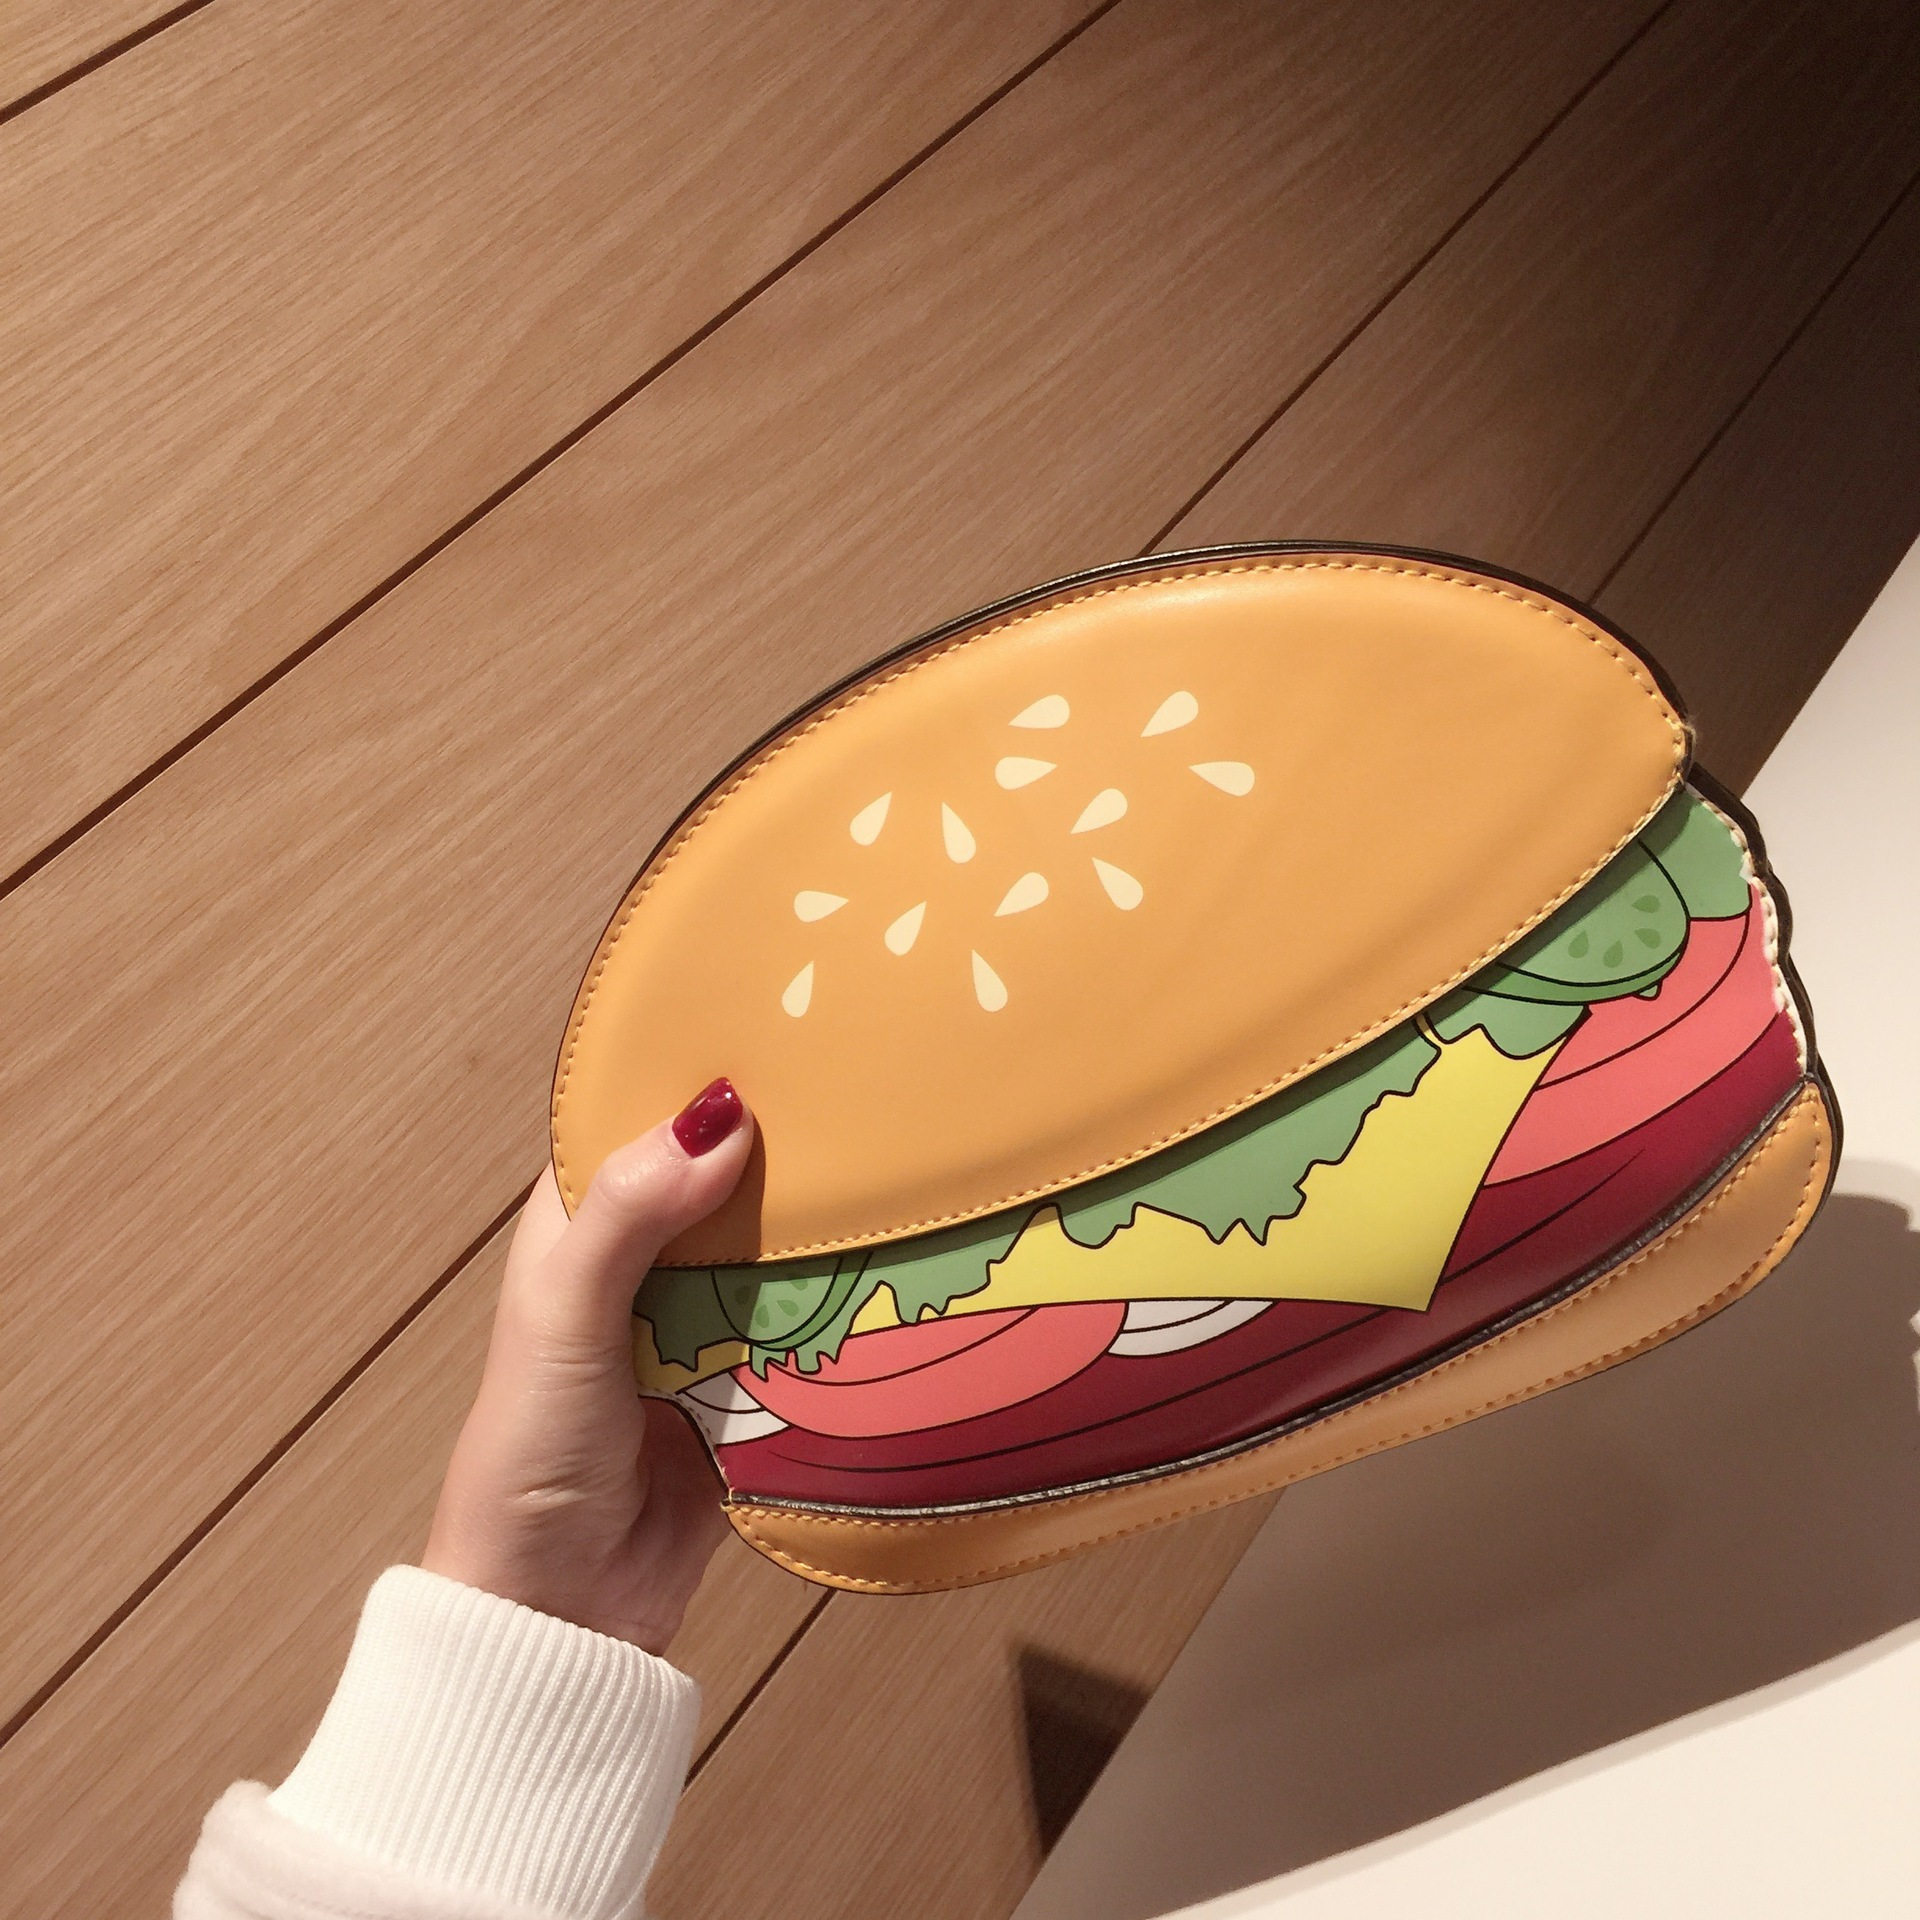 3D Cute Cartoon Women Shoulder Handbag Hamburger Ice cream Cake Bags Small Chain Clutch Crossbody Girls Messenger Bag Watermelon цена